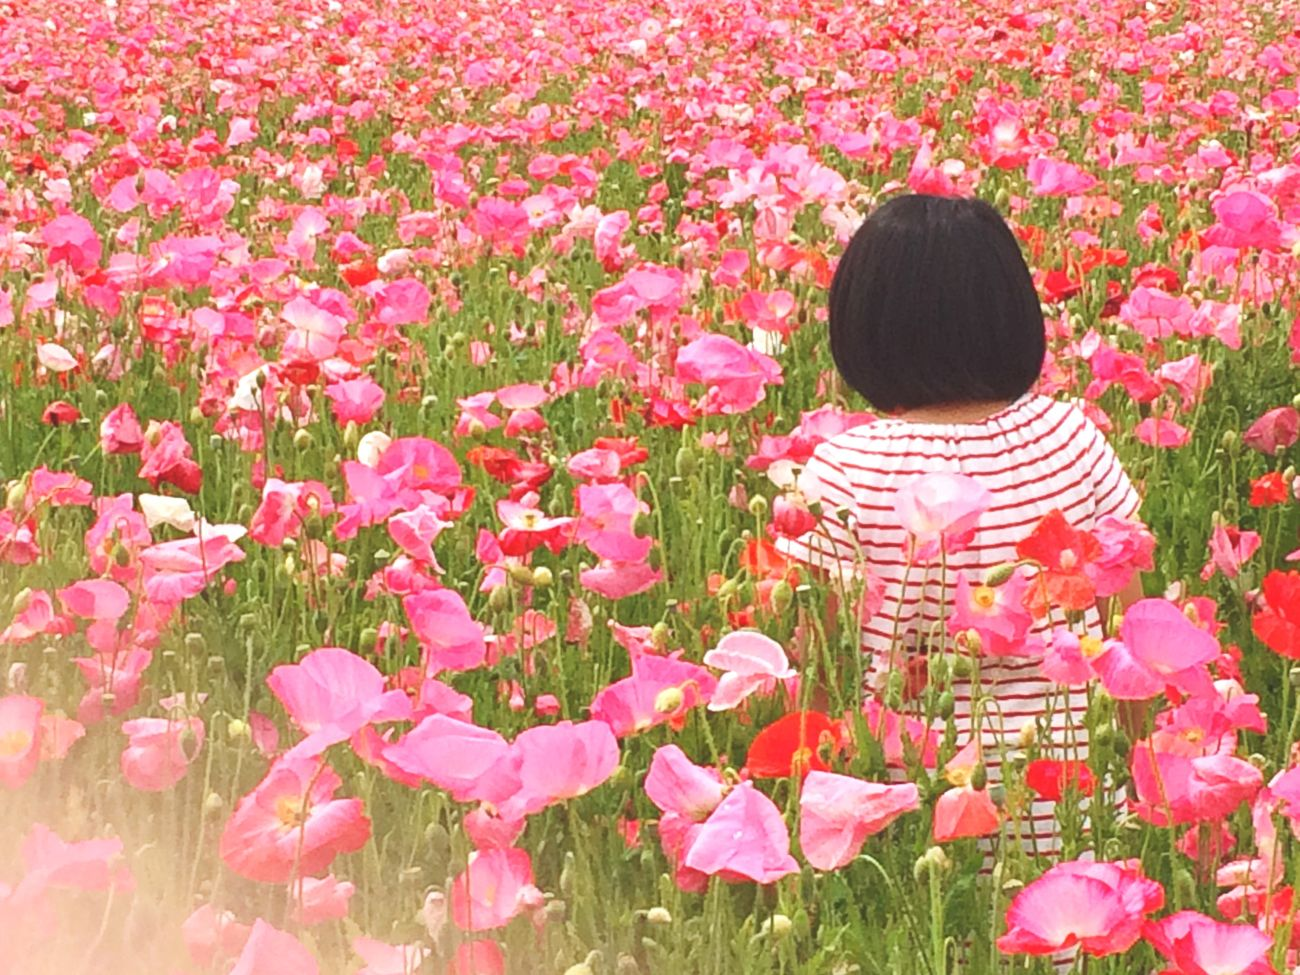 IPhoneography Poppy Landscape EyeEm Nature Lover Flowerporn Enjoying Life Taking Photo Snapshots Of Life 買い物ついでに寄ったから、カメラ持ってませんでした…残念すぎるーヽ(;▽;)ノ